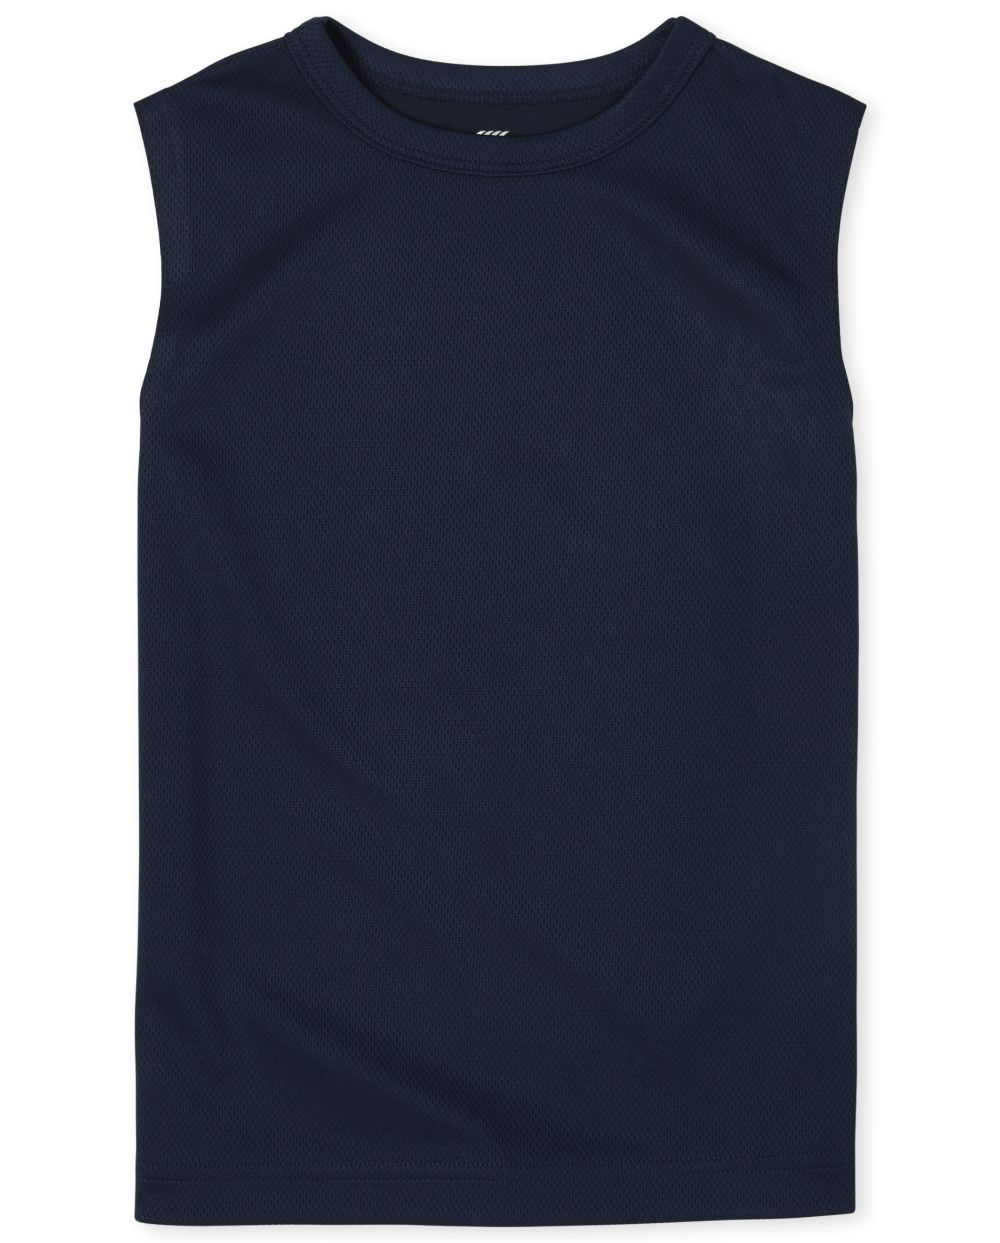 Boys Mix And Match Mesh Muscle Tank Top